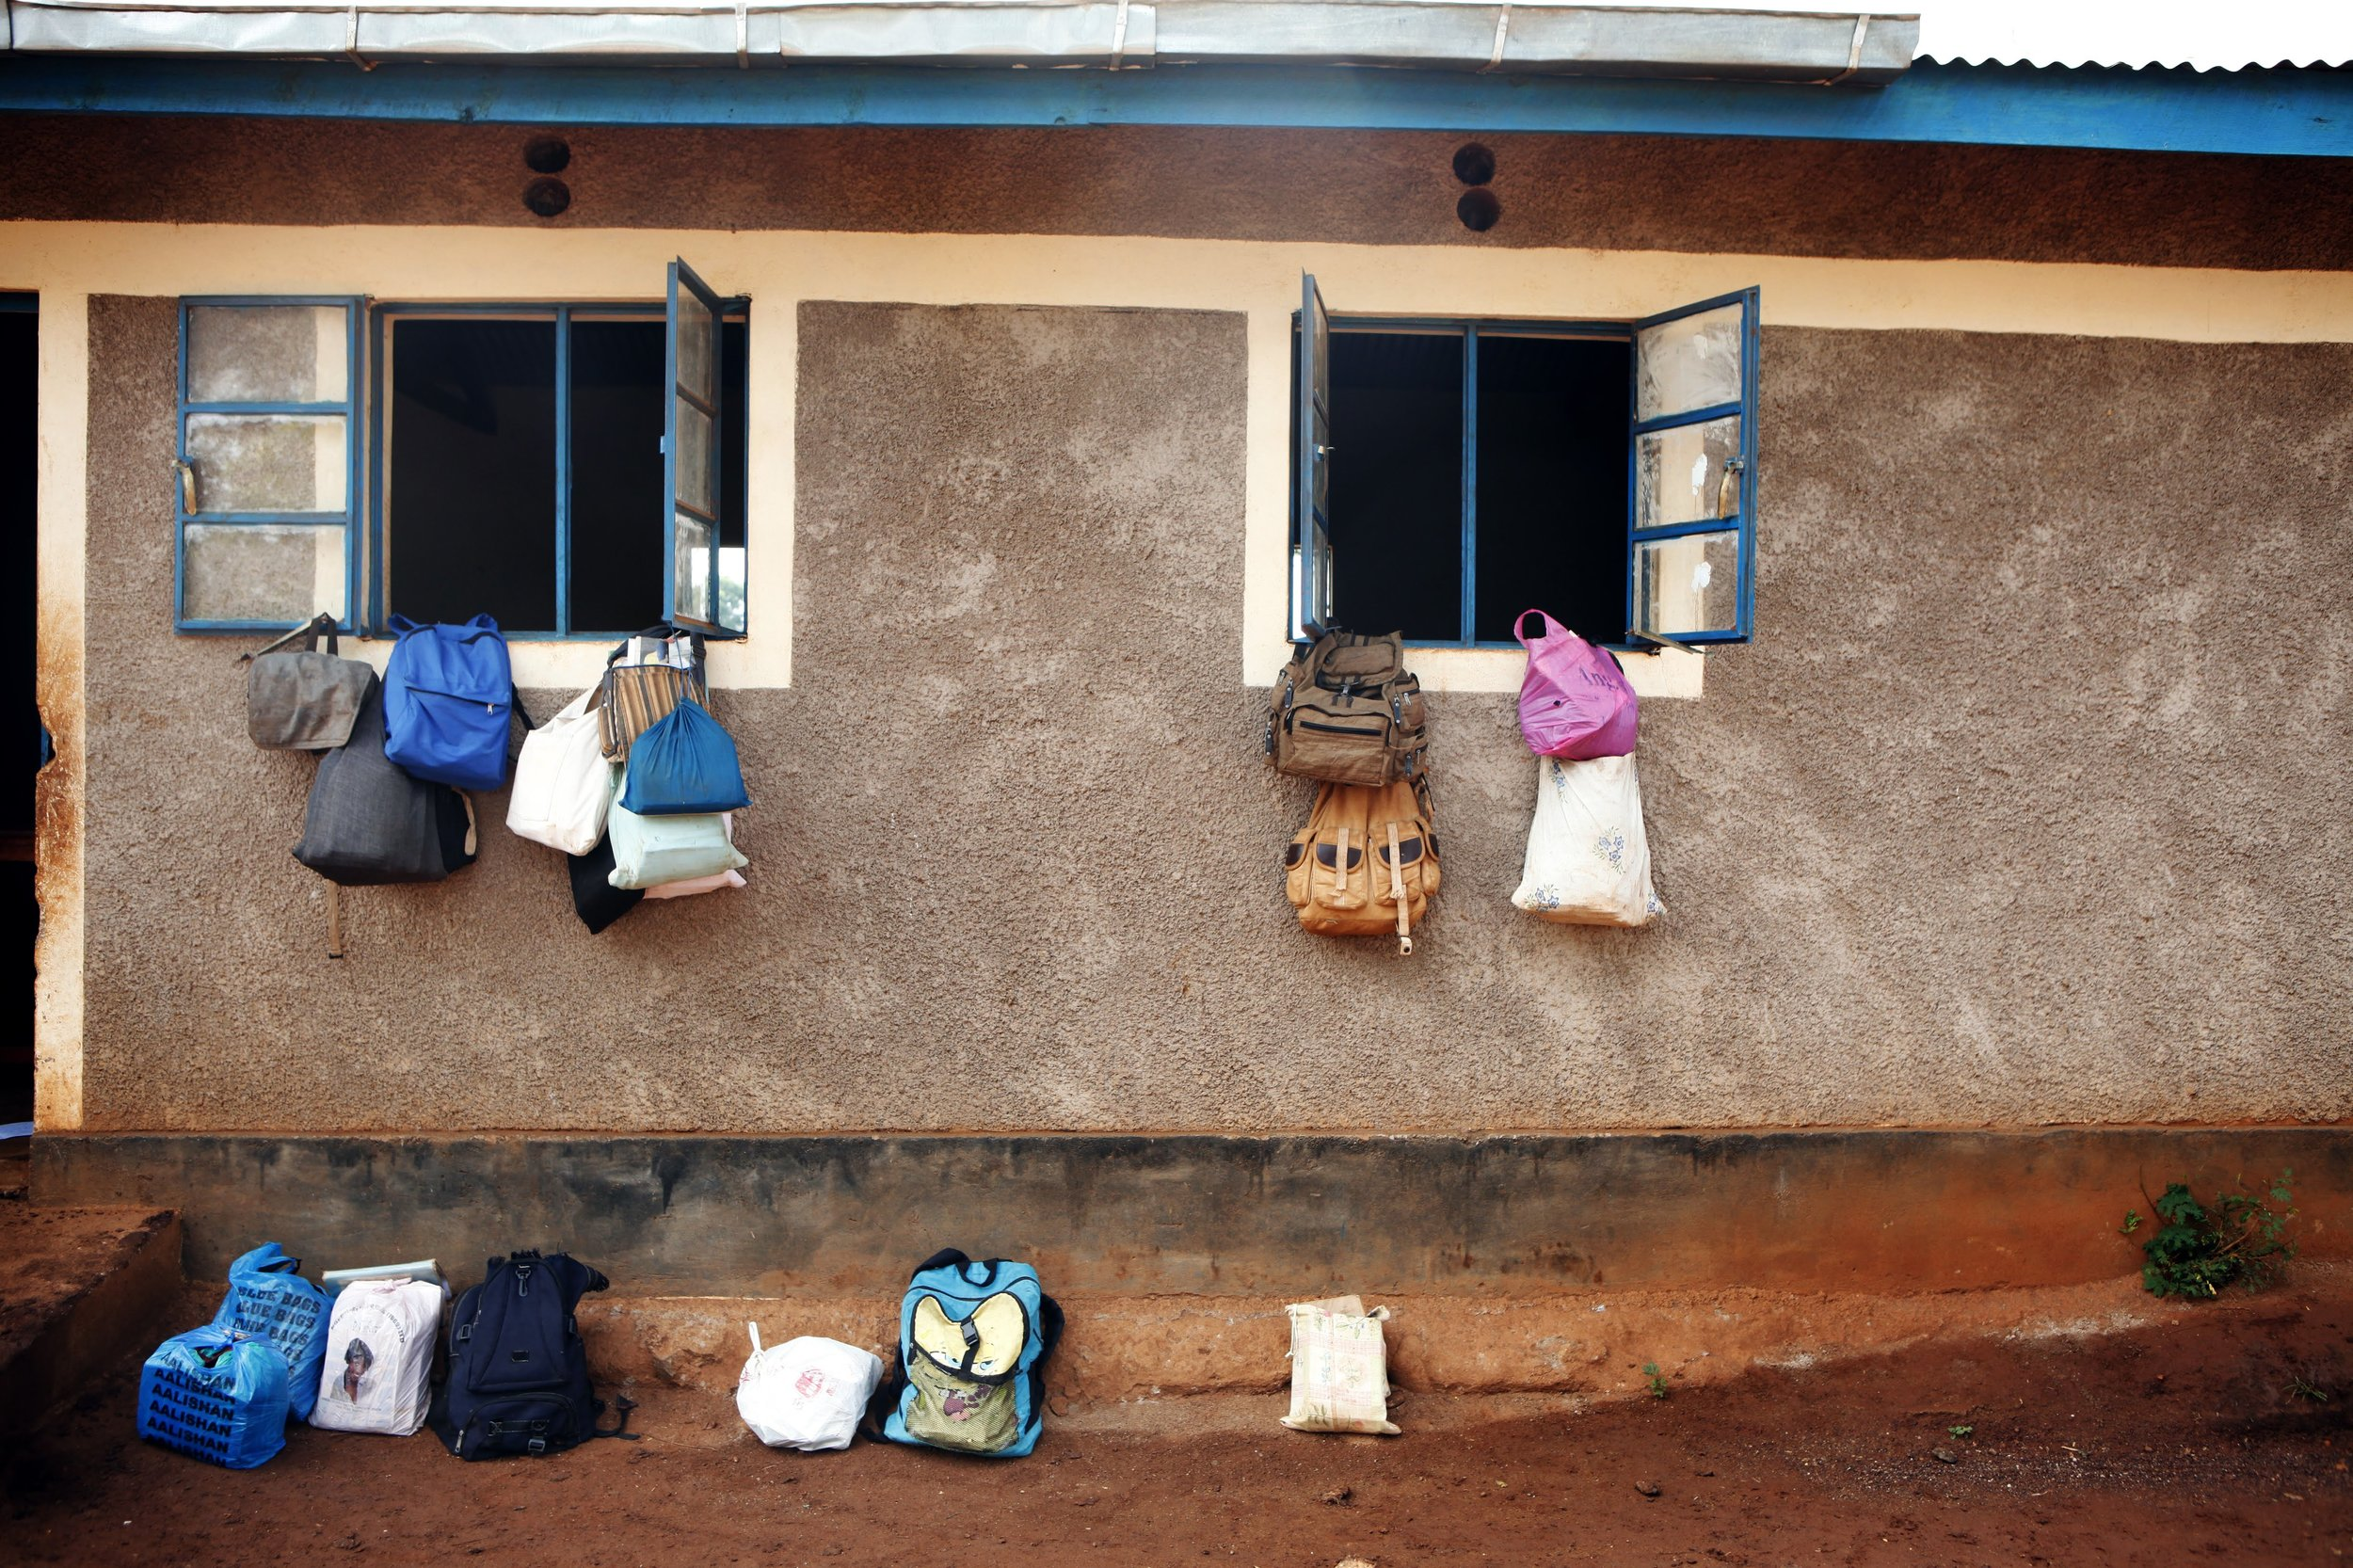 School bags outside the classroom